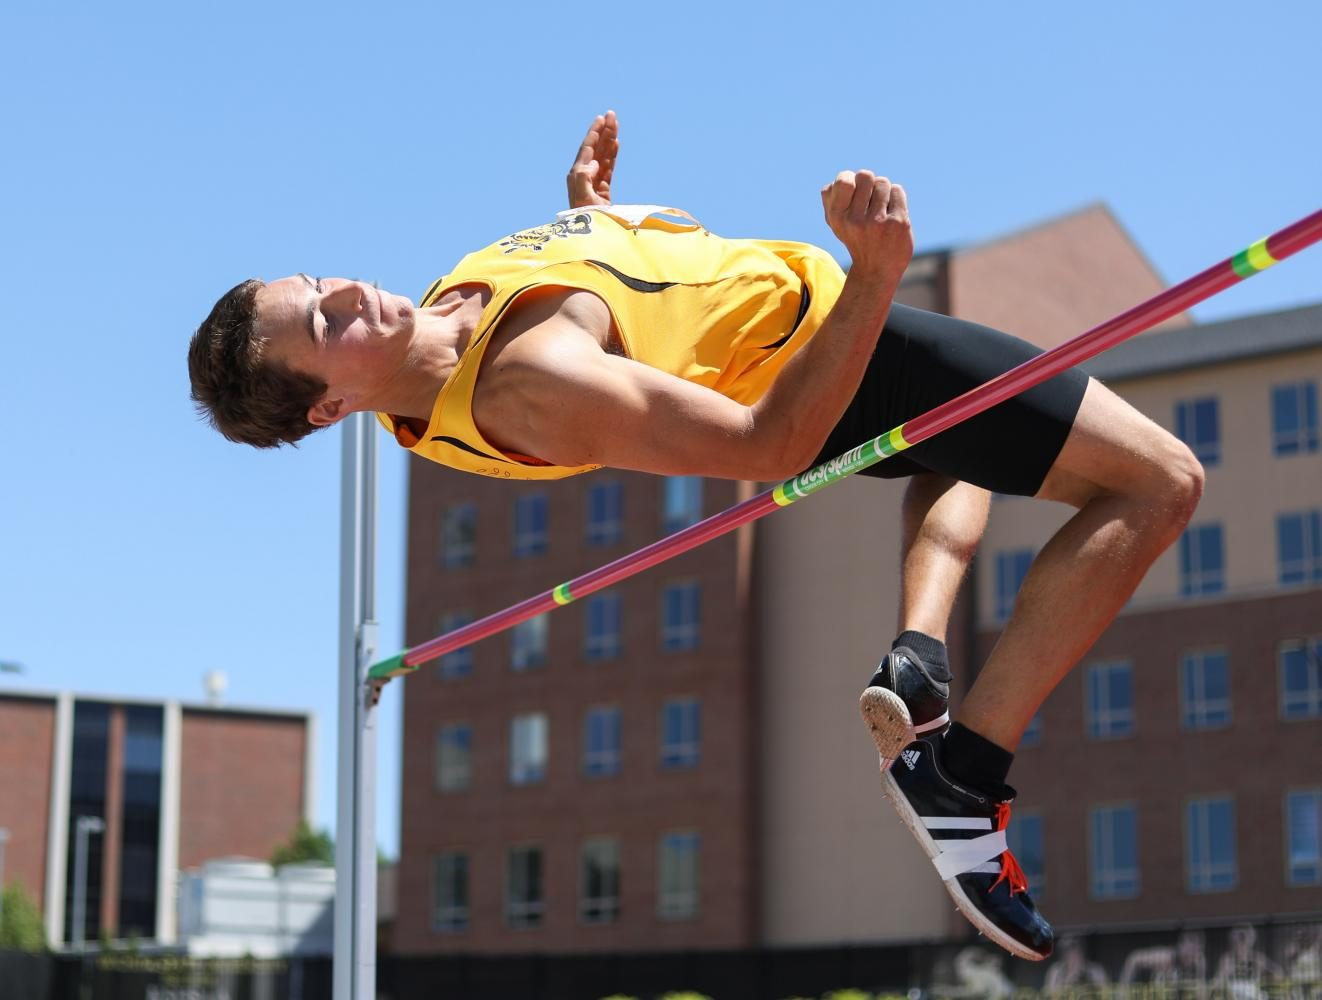 Ben+Johnson+high+jumps+during+the+decathlon+Friday+at+the+Missouri+Valley+Conference+Outdoor+Track+and+Field+Championship.+Johnson+won+the+decathlon+by+a+margin+of+over+400+points%2C+scoring+a+total+of+7053+points.+%28May+12%2C+2017%29